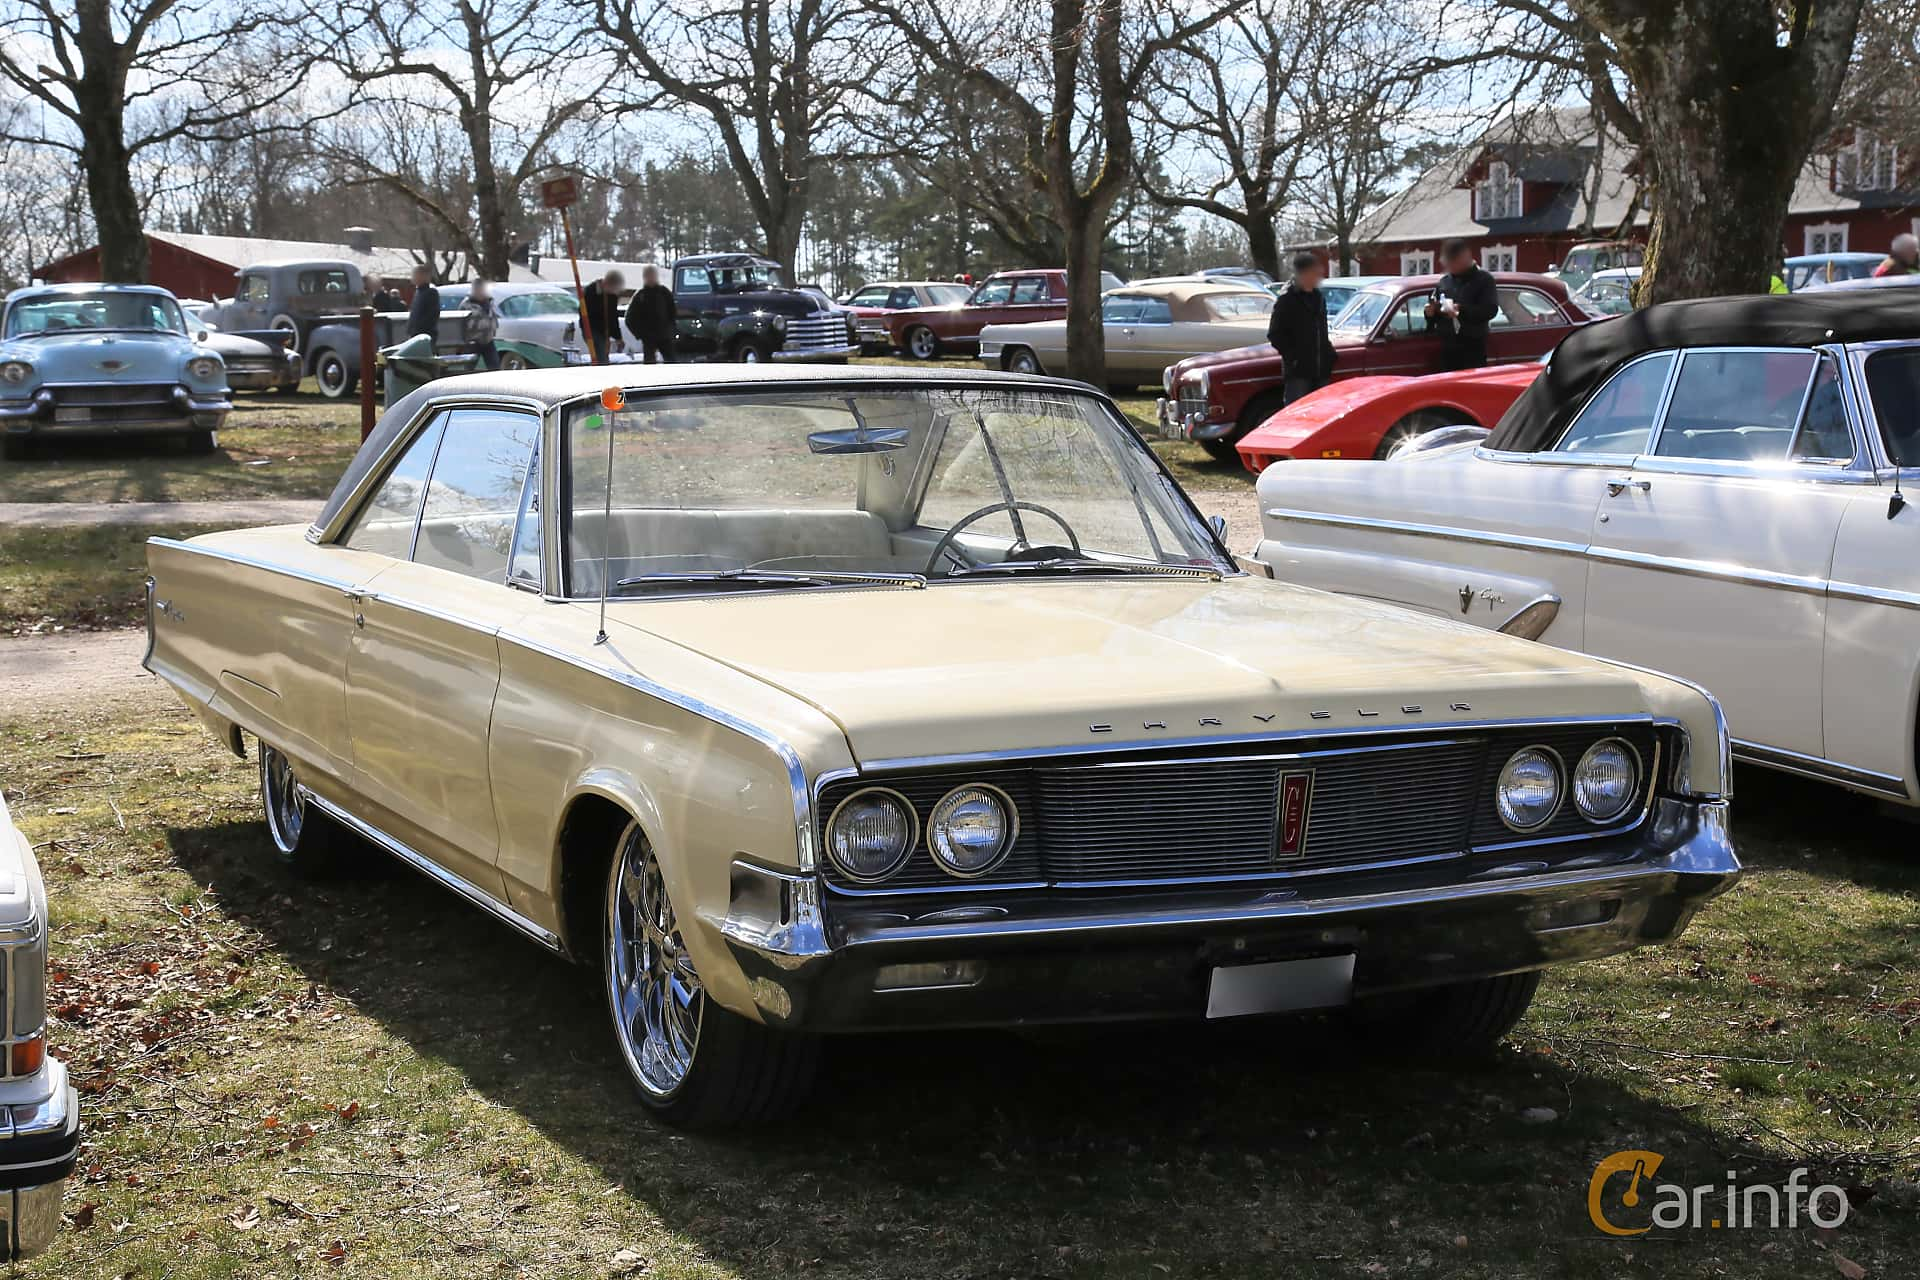 Chrysler Newport 2-door Hardtop 6.3 V8 TorqueFlite, 274hp, 1965 at Uddevalla Veteranbilsmarknad Backamo, Ljungsk 2019